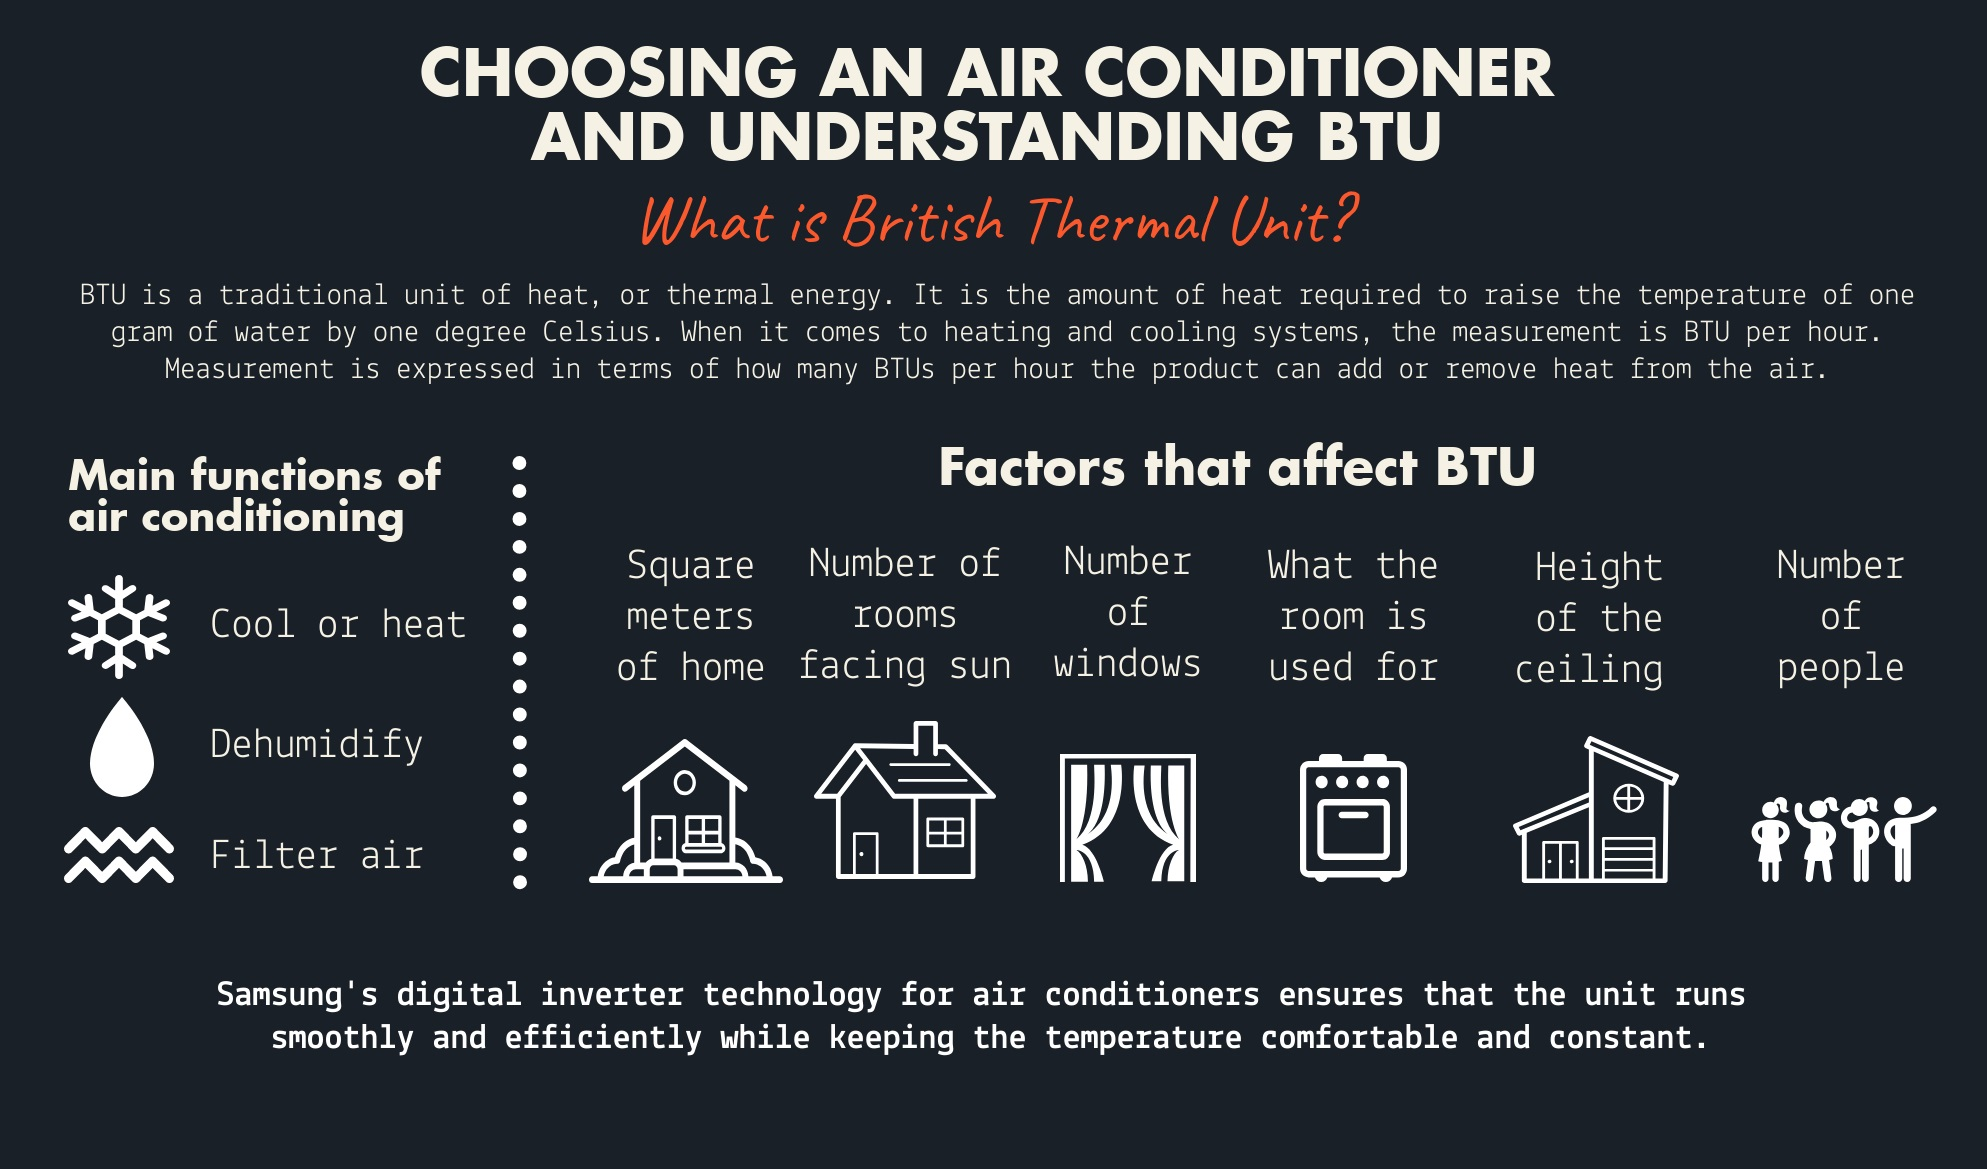 Infographic-Choosing-An-Air-Conditioner-